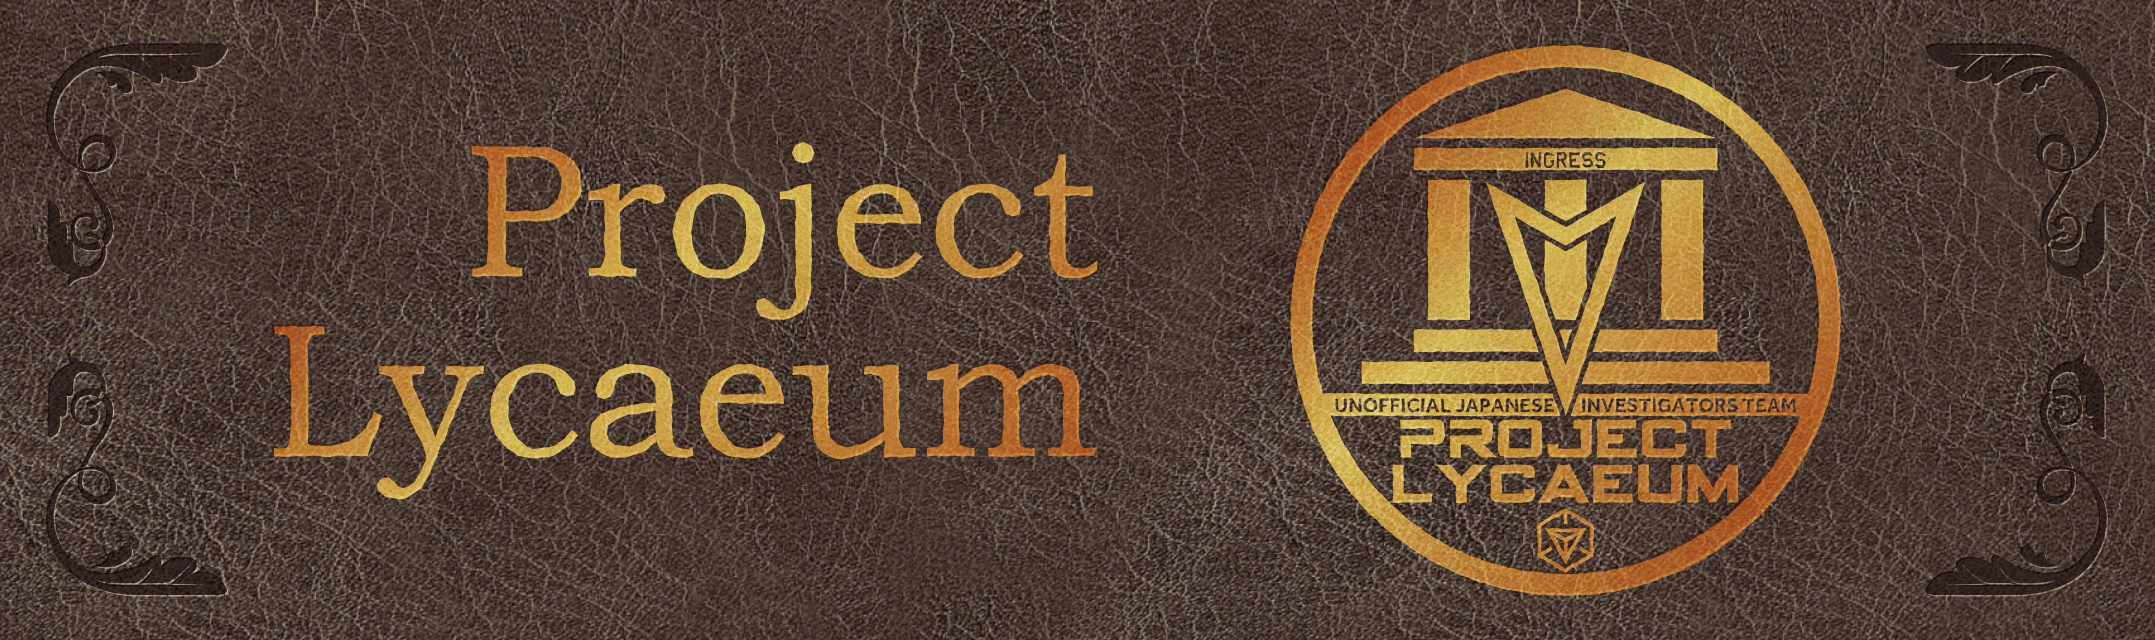 PROJECT LYCAEUM